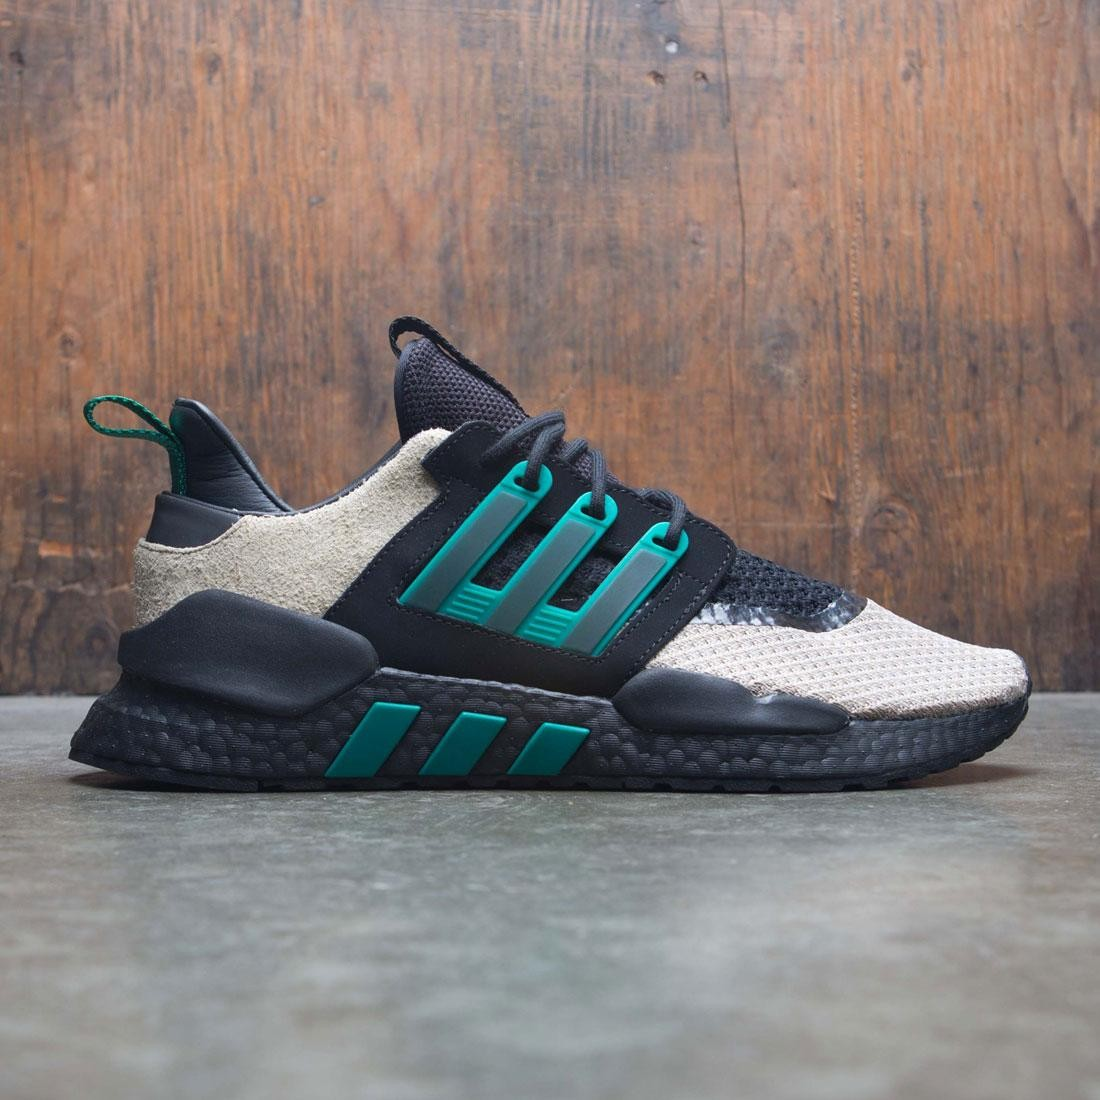 purchase cheap 15070 8b1e2 ... Adidas Consortium x Packer Shoes Men EQT 9118 (black sub green blanch  cargo) attractive ...